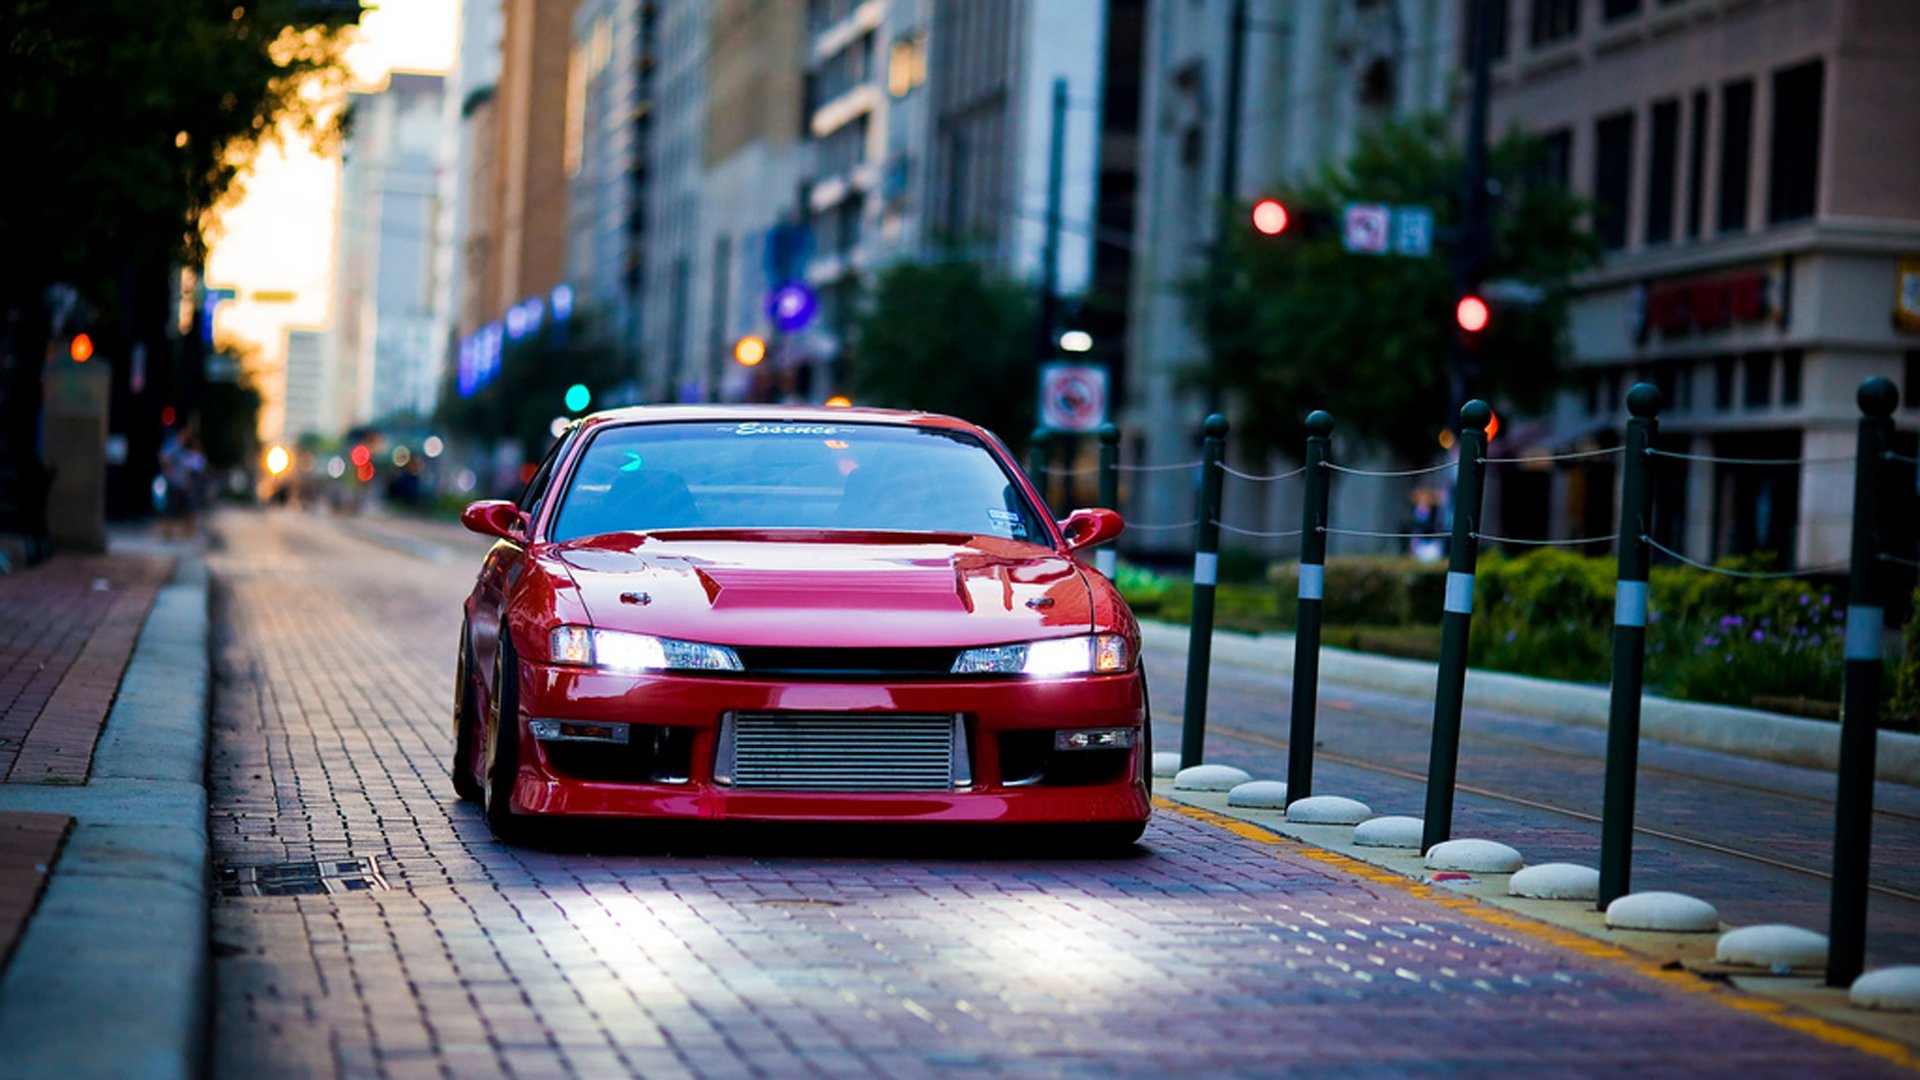 1920x1080 - Nissan Silvia S14 Wallpapers 25